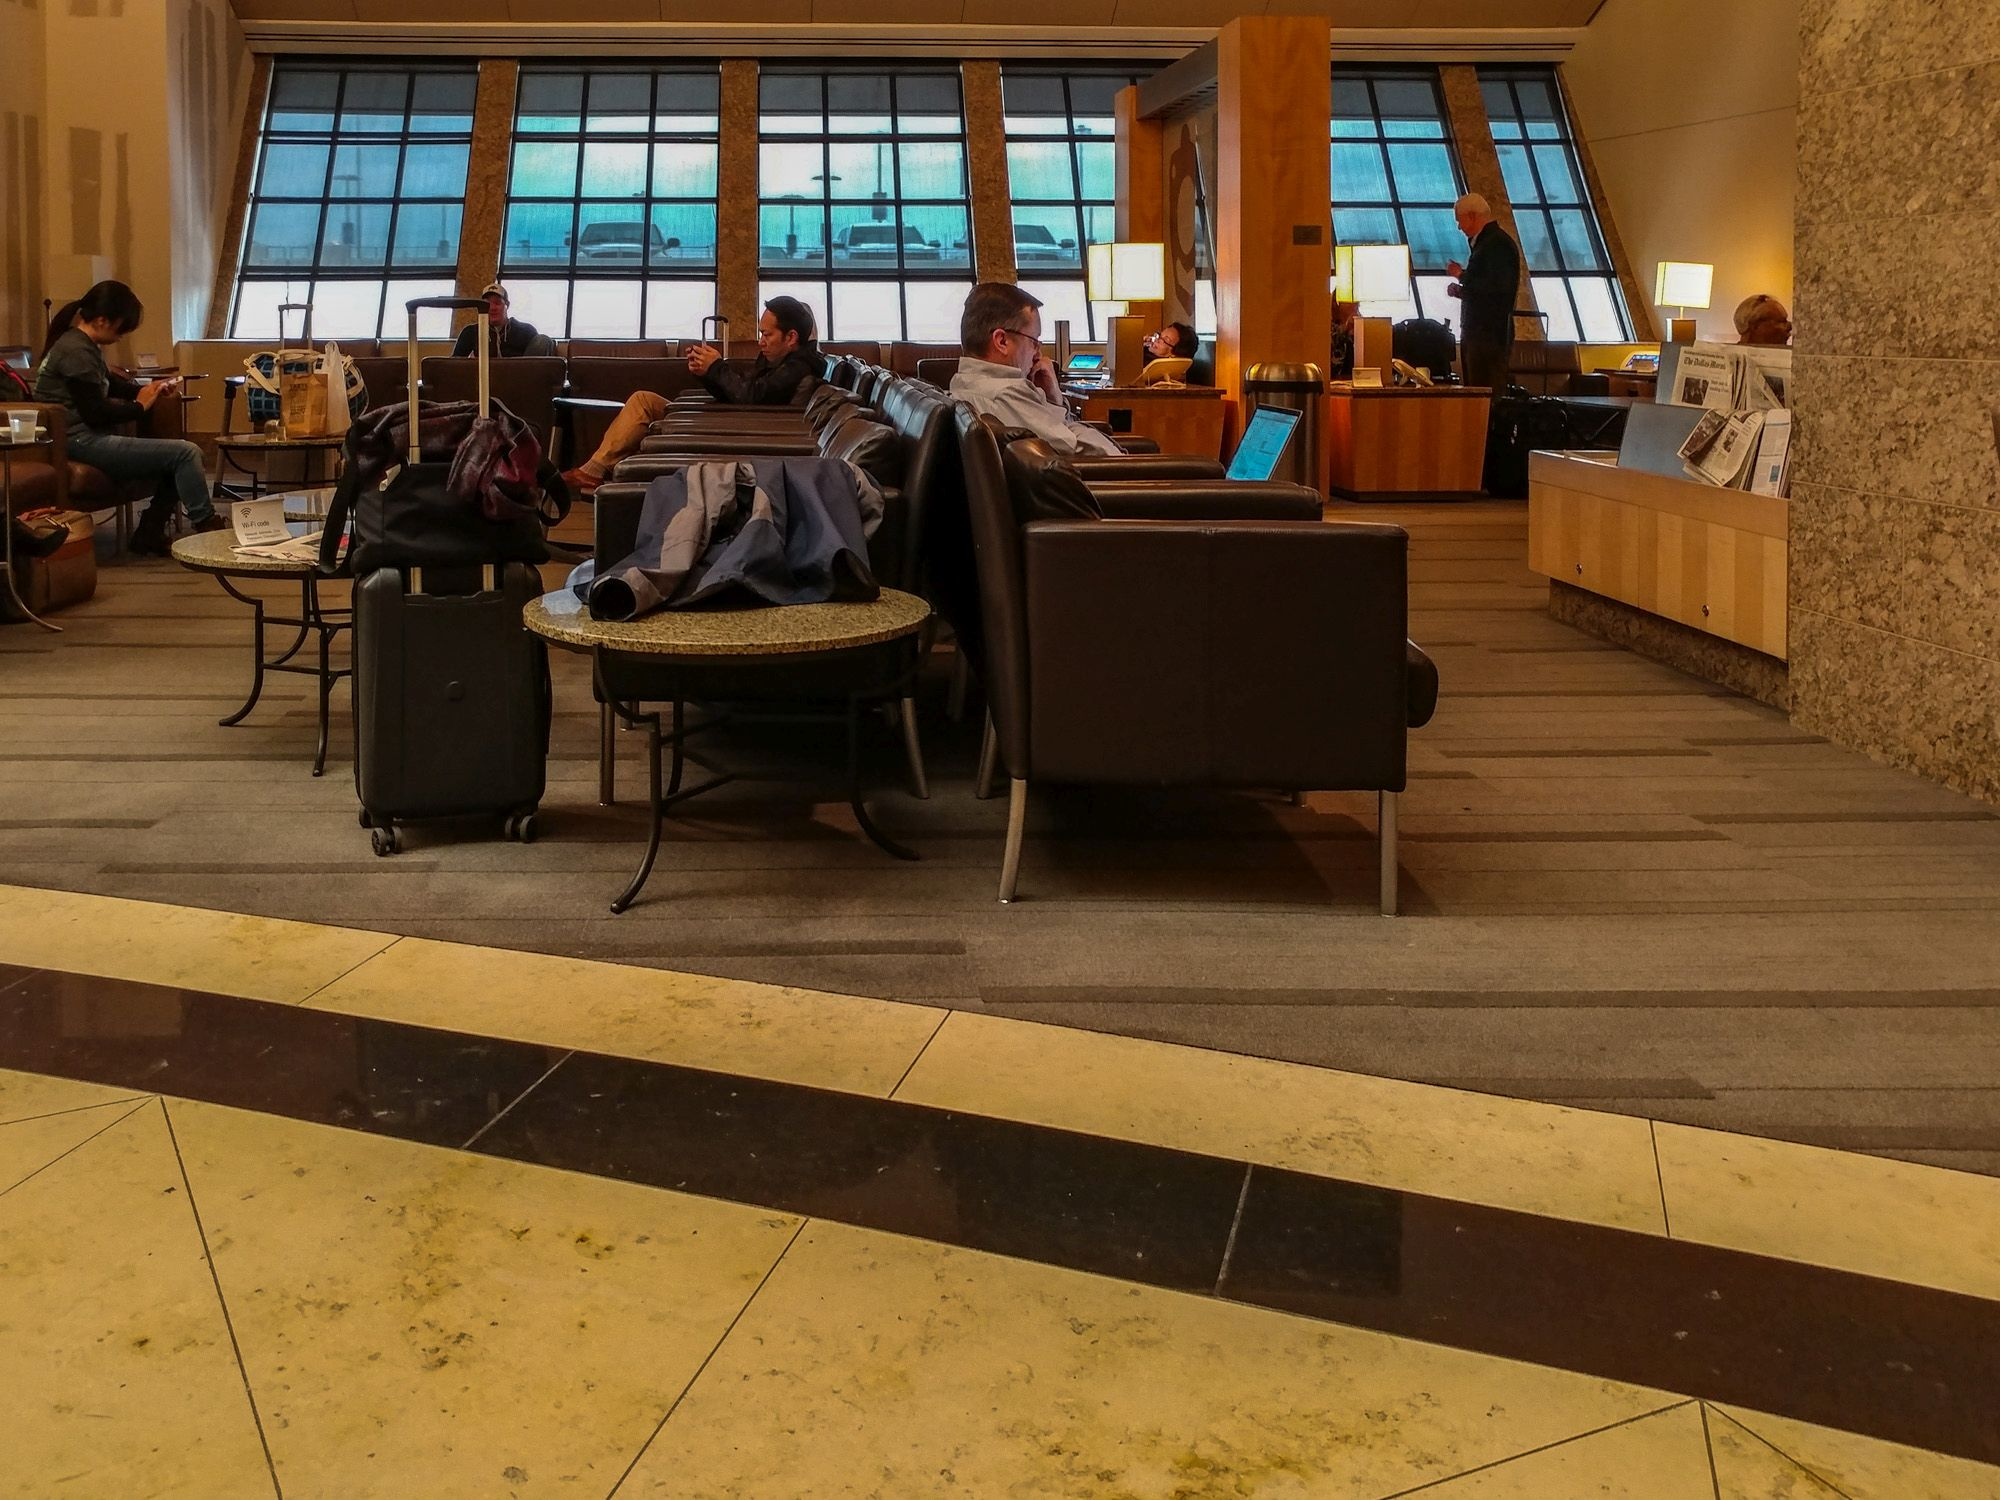 Lounge Review: American Airlines Admirals Club Dallas/Fort Worth (DFW) Terminal A